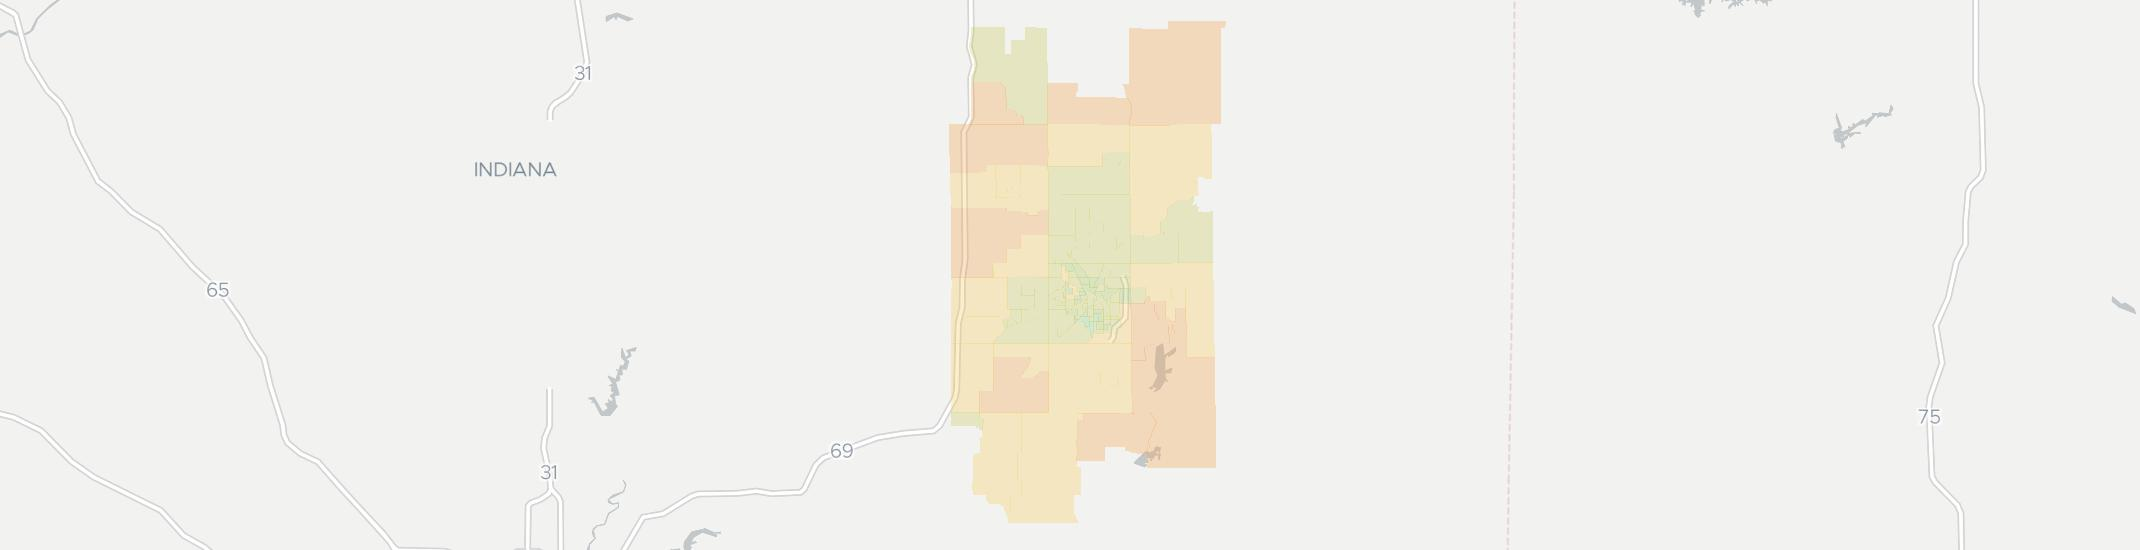 Muncie Zip Code Map.Internet Providers In Muncie In Compare 20 Providers